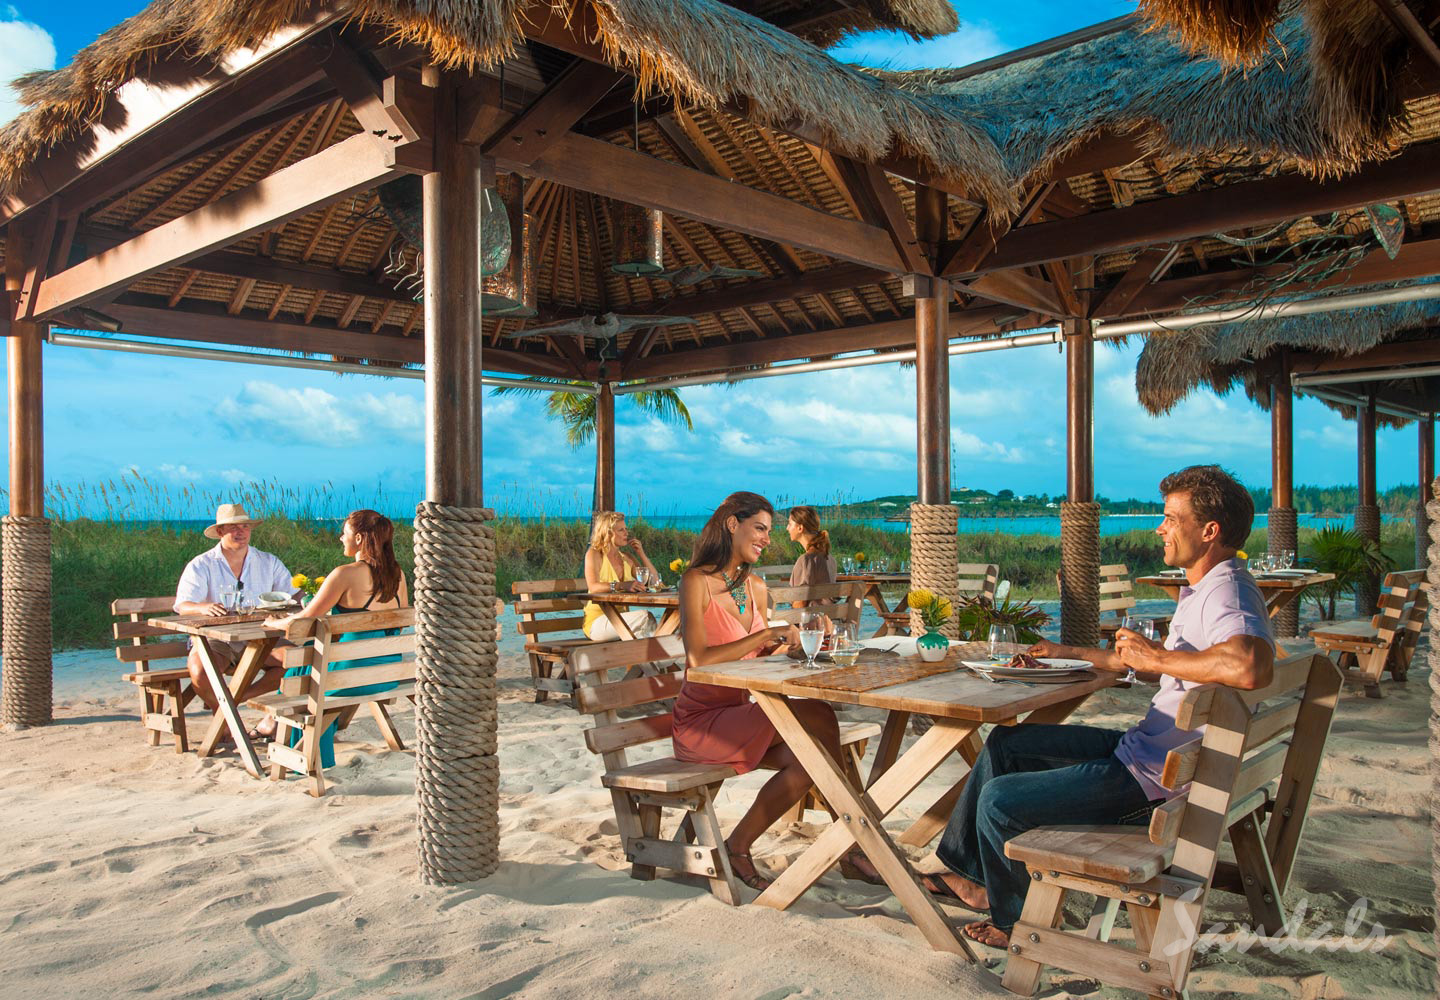 Travel Agency All-Inclusive Resort Sandals Emerald Bay 084